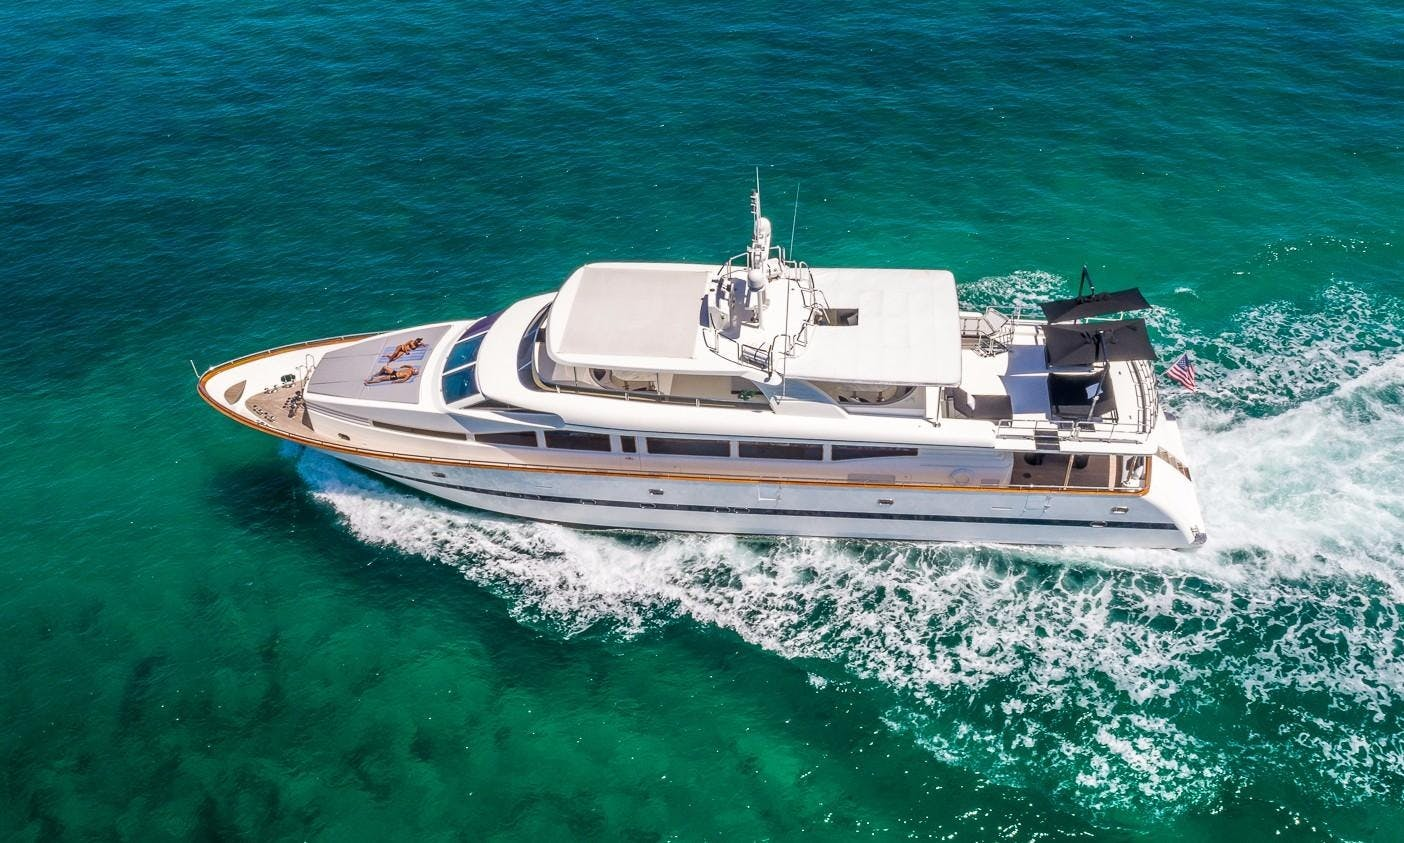 Mega Yacht 115' Horizon. Modern with jacuzzi and water toys